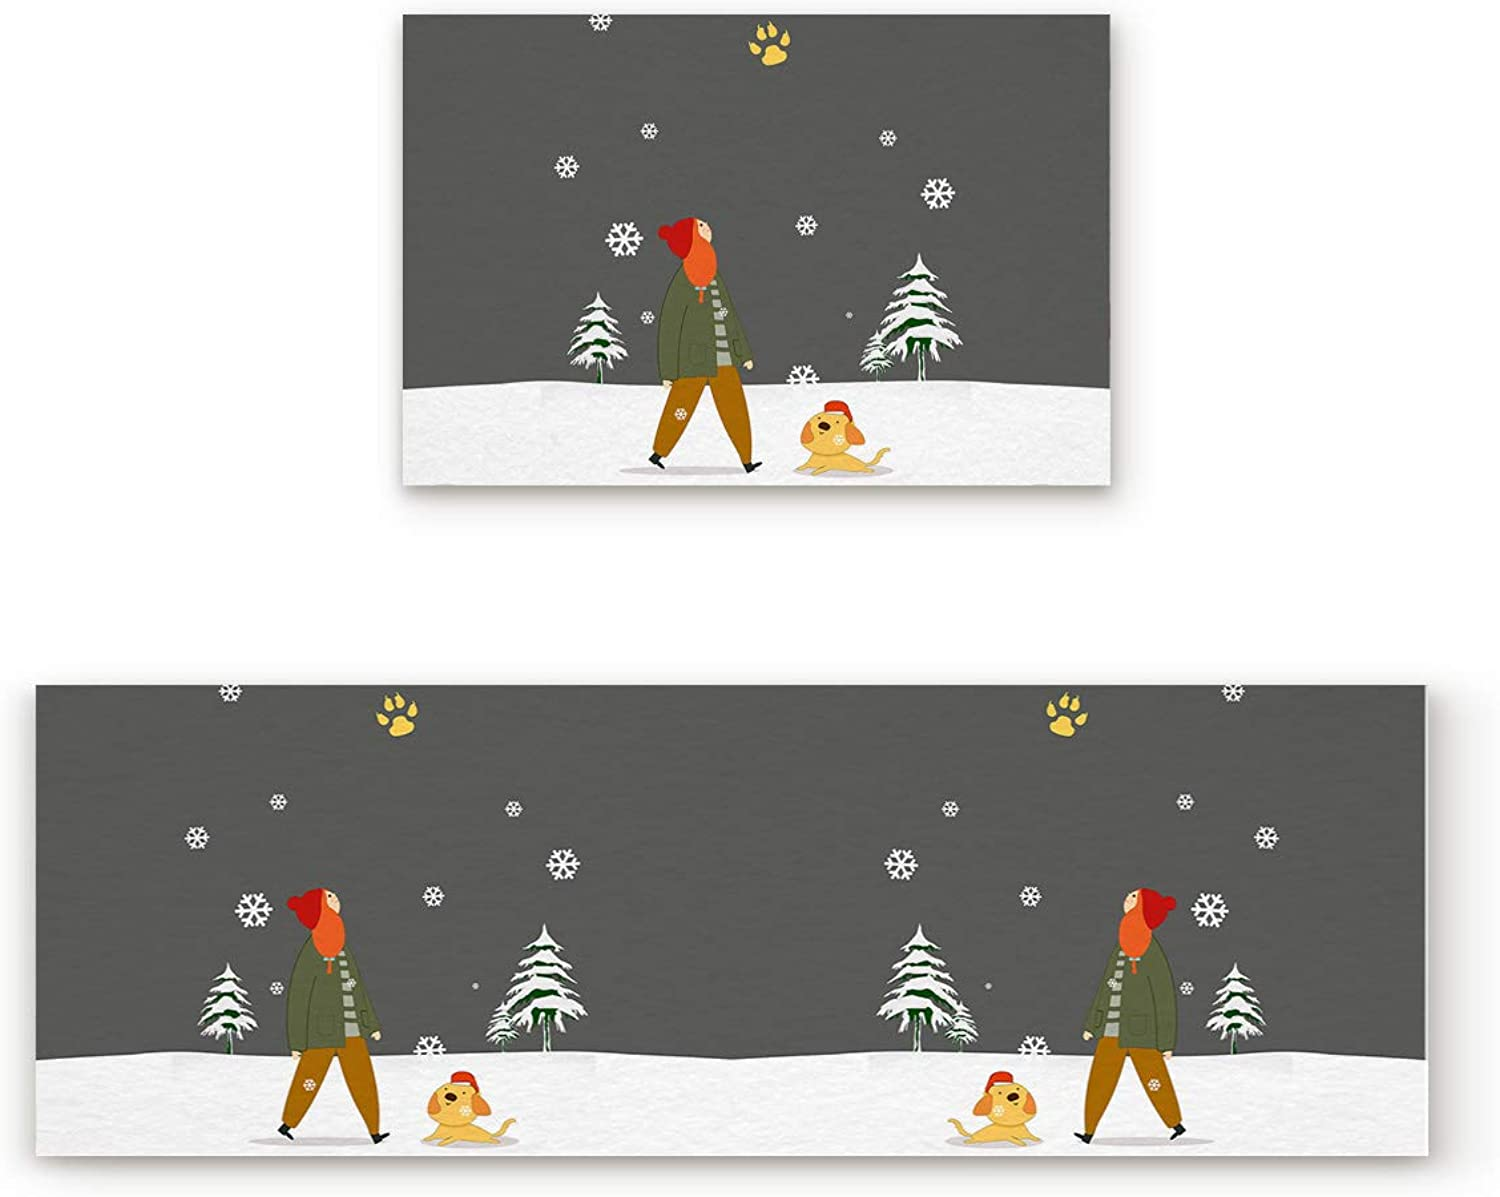 2 Piece Non-Slip Kitchen Mat Rubber Backing Doormat Runner Rug Set, Kids Area Rug Carpet Bedroom Rug Christmas Girl with her Puppy Dog Play on Xmas Tree Snowflake Grey Background 19.7x31.5in+19.7x63in